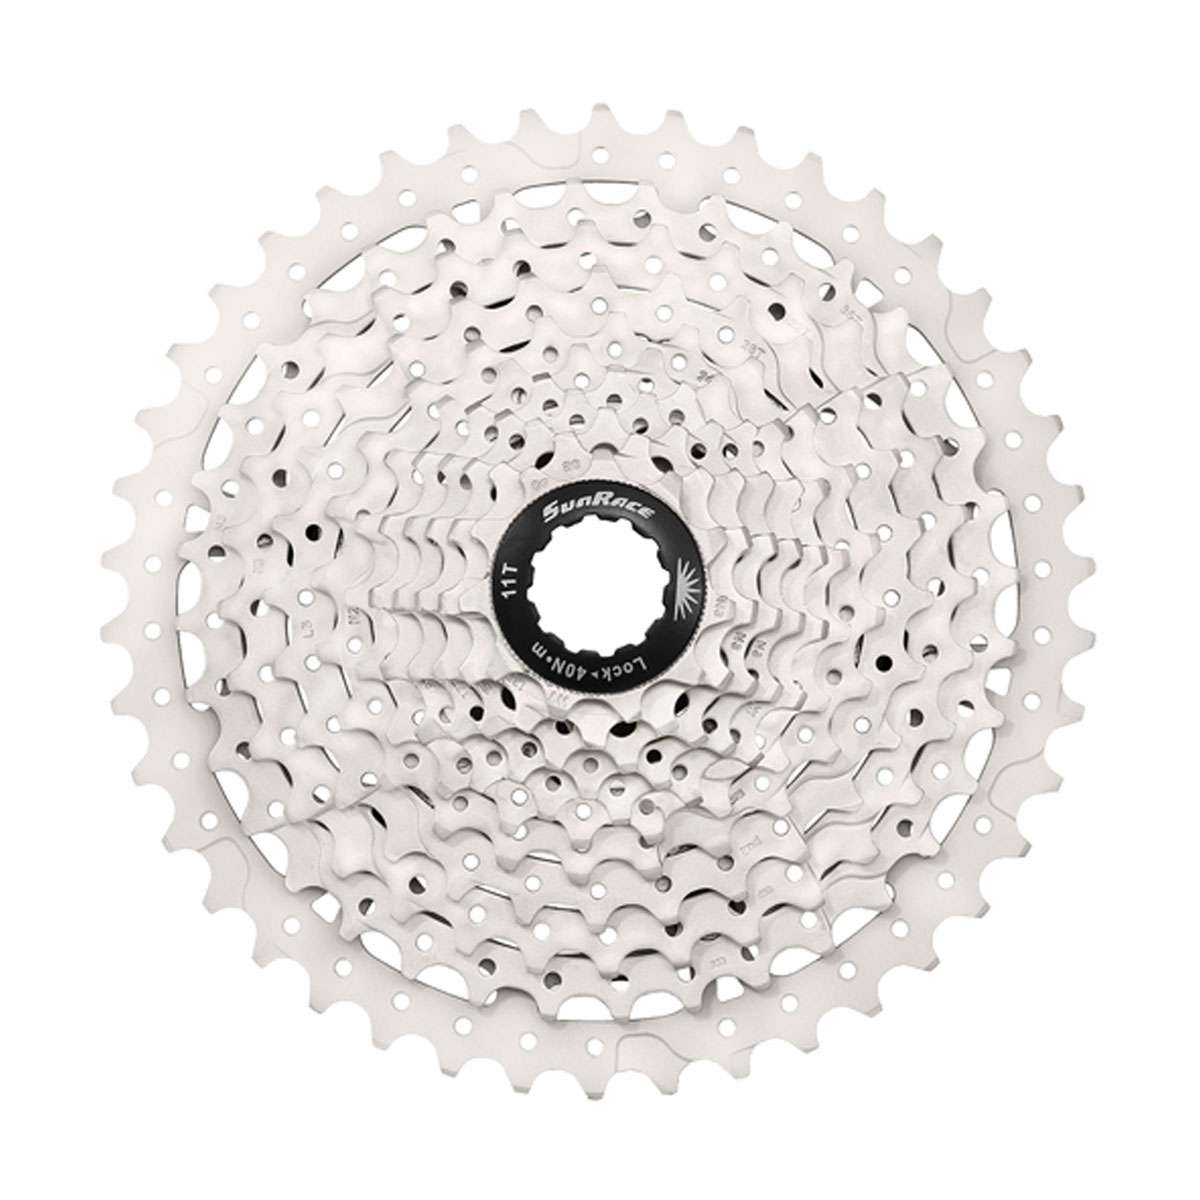 SunRace CSMS1 10 Speed Bicycle Cassette - 11-36 - CSMS1.TAW0.XS0.BX